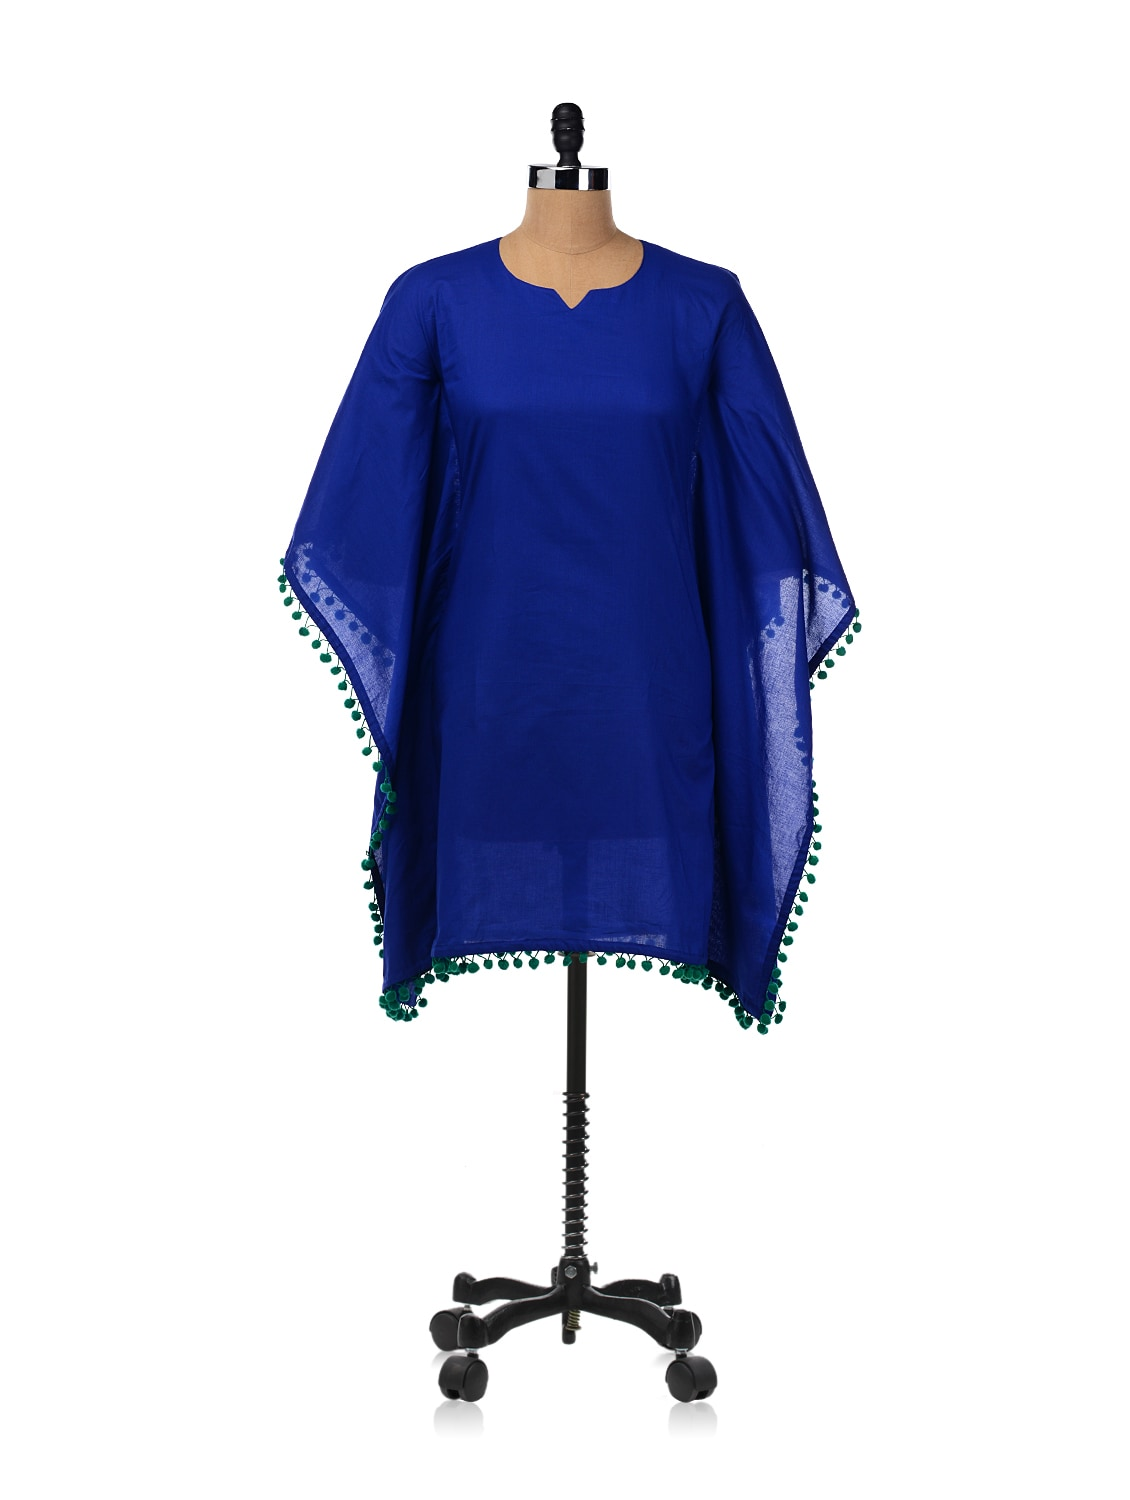 Kaftan Tunic Dress With Pom Pom Trim - RIGOGLIOSO 6834